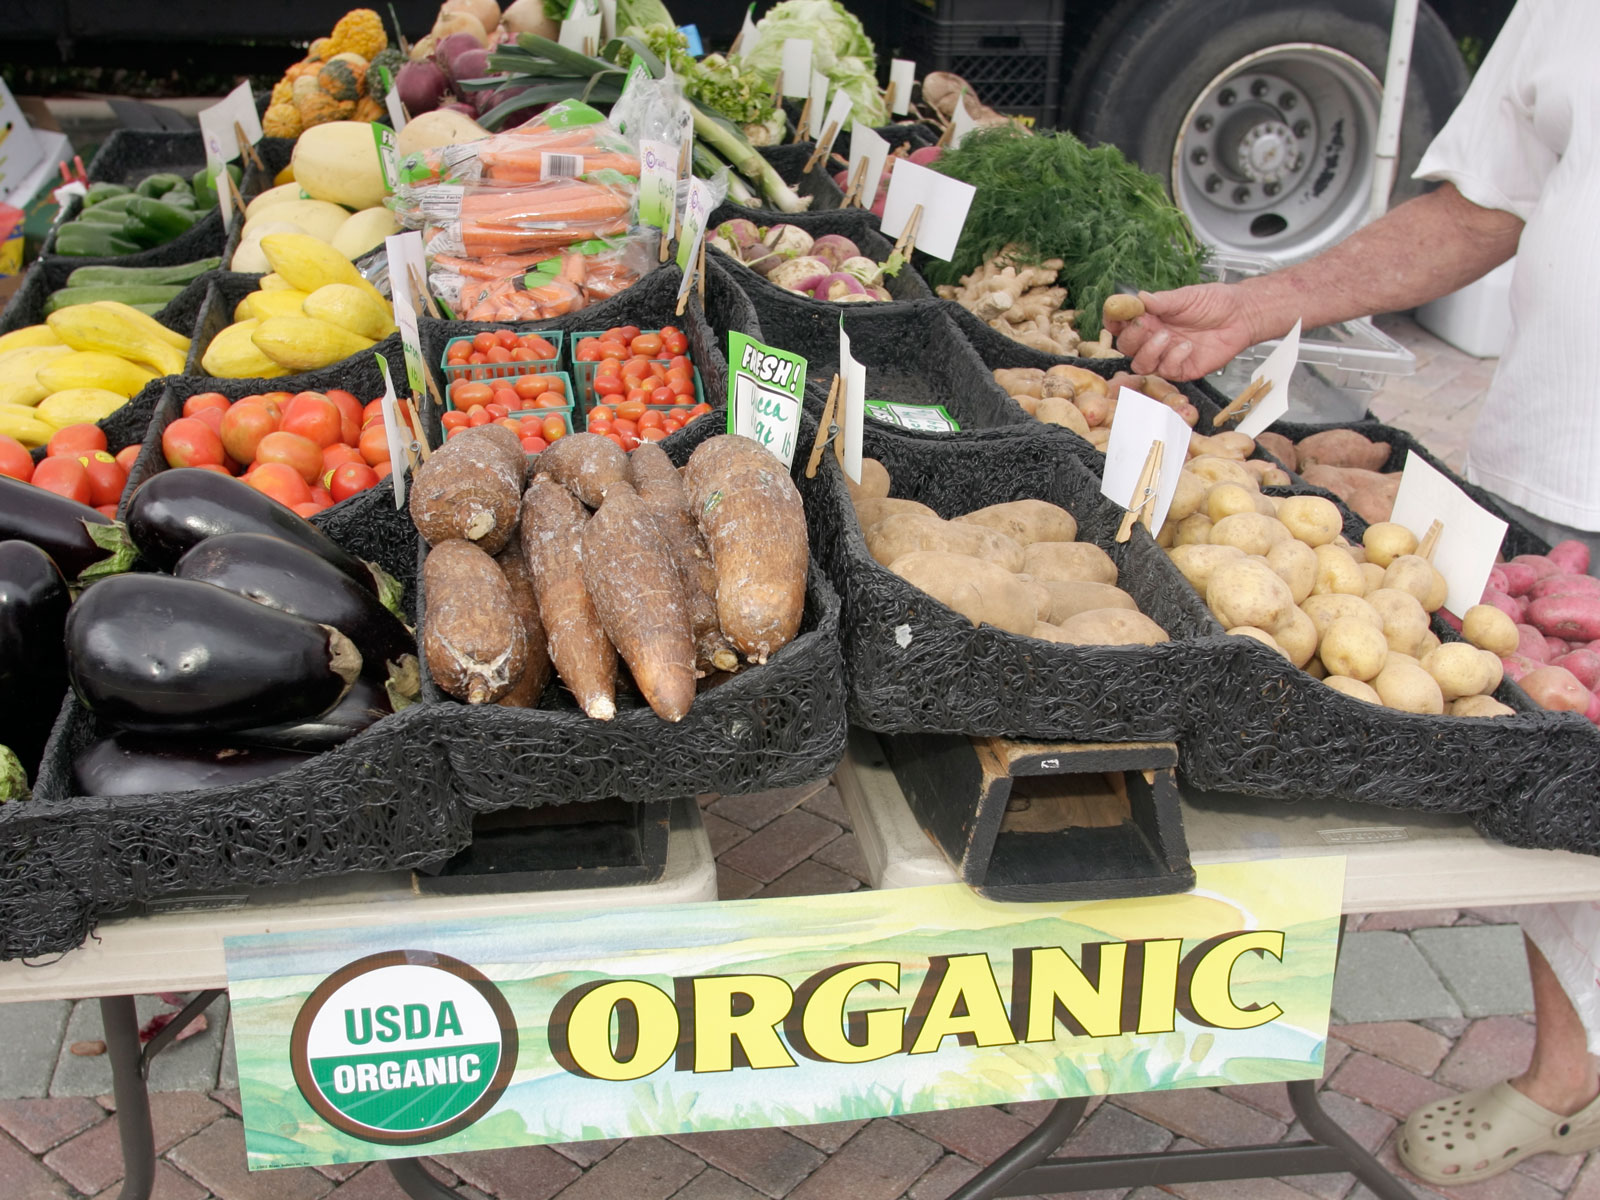 Organic Food Fraud Is a Big Problem—Here's What the Government Plans to Do About It